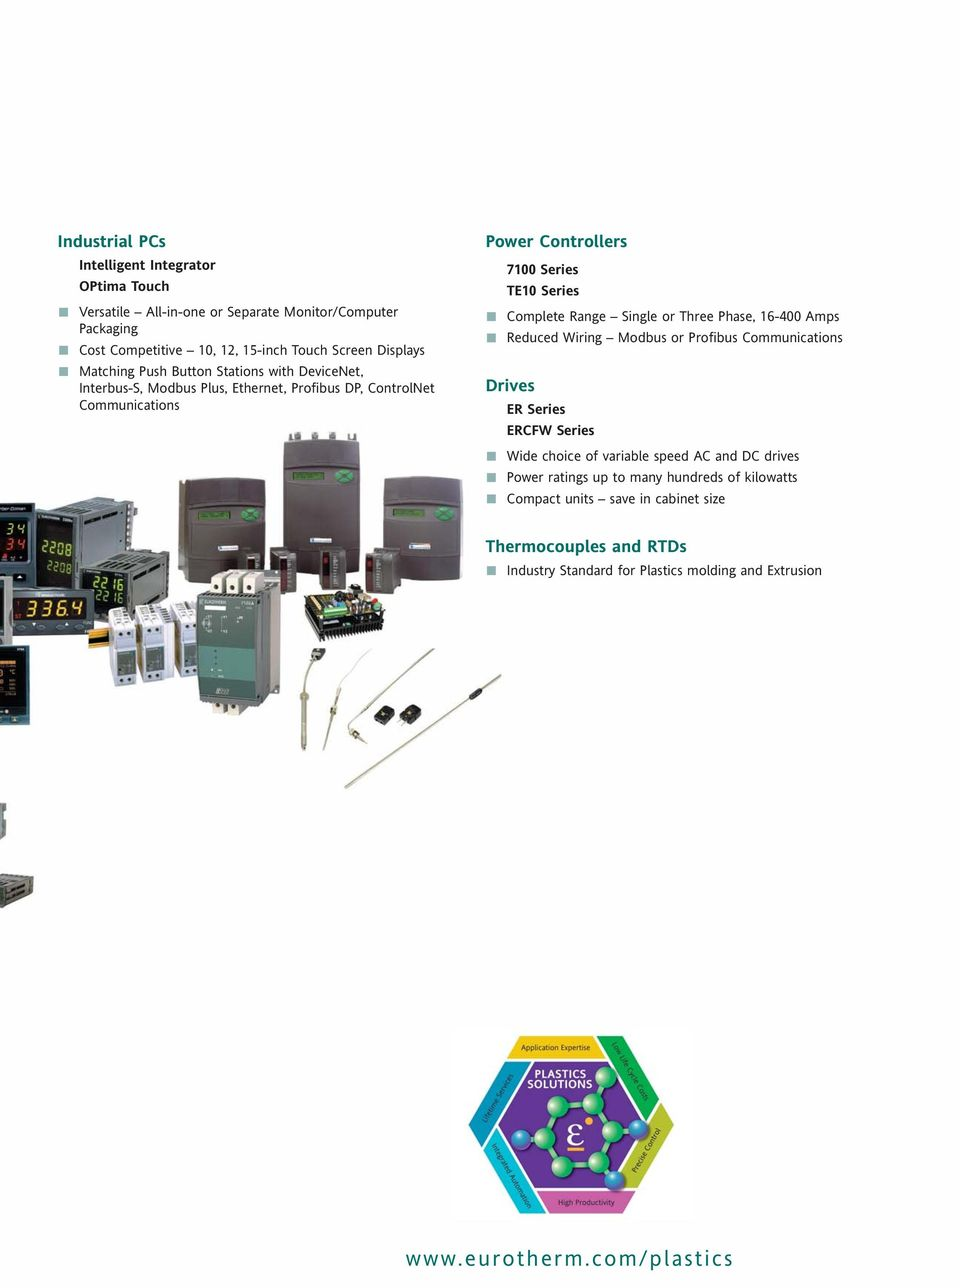 Complete Range Single or Three Phase, 16-400 Amps Reduced Wiring Modbus or Profibus Communications Drives ER Series ERCFW Series Wide choice of variable speed AC and